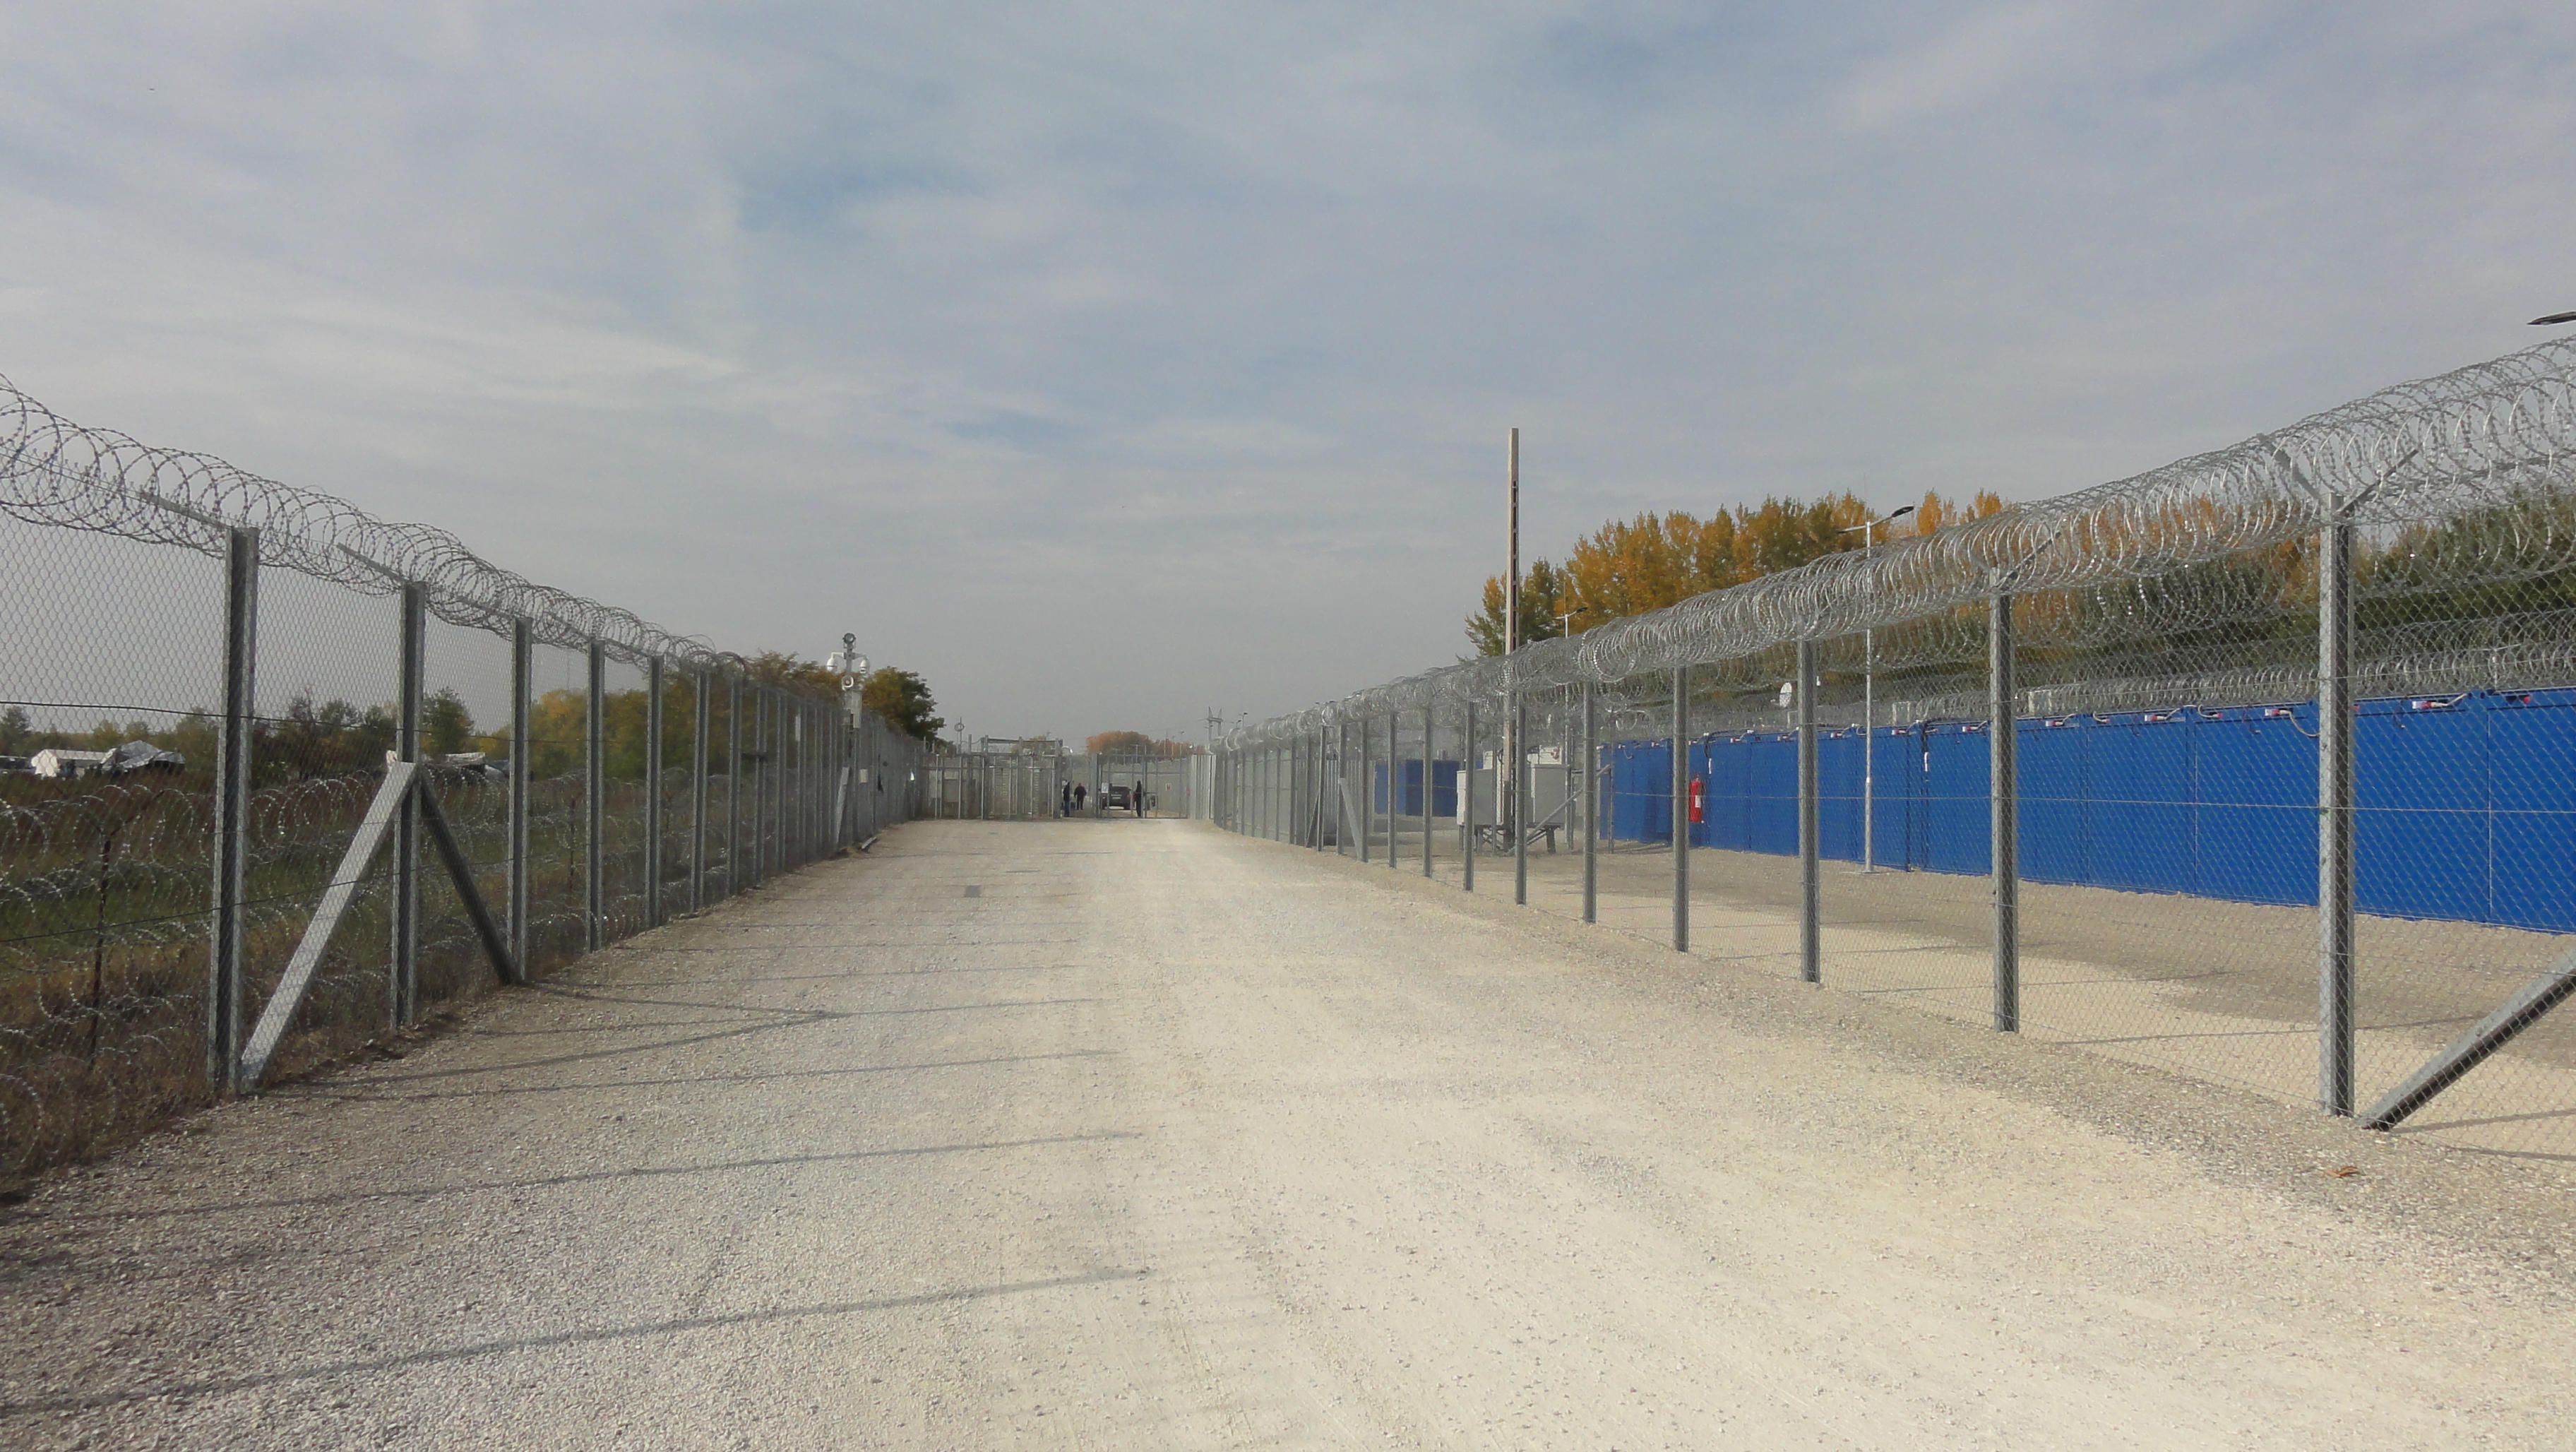 Hungary: anti-torture Committee observed decent conditions in transit zones but criticises treatment of irregular migrants when 'pushed back' to Serbia